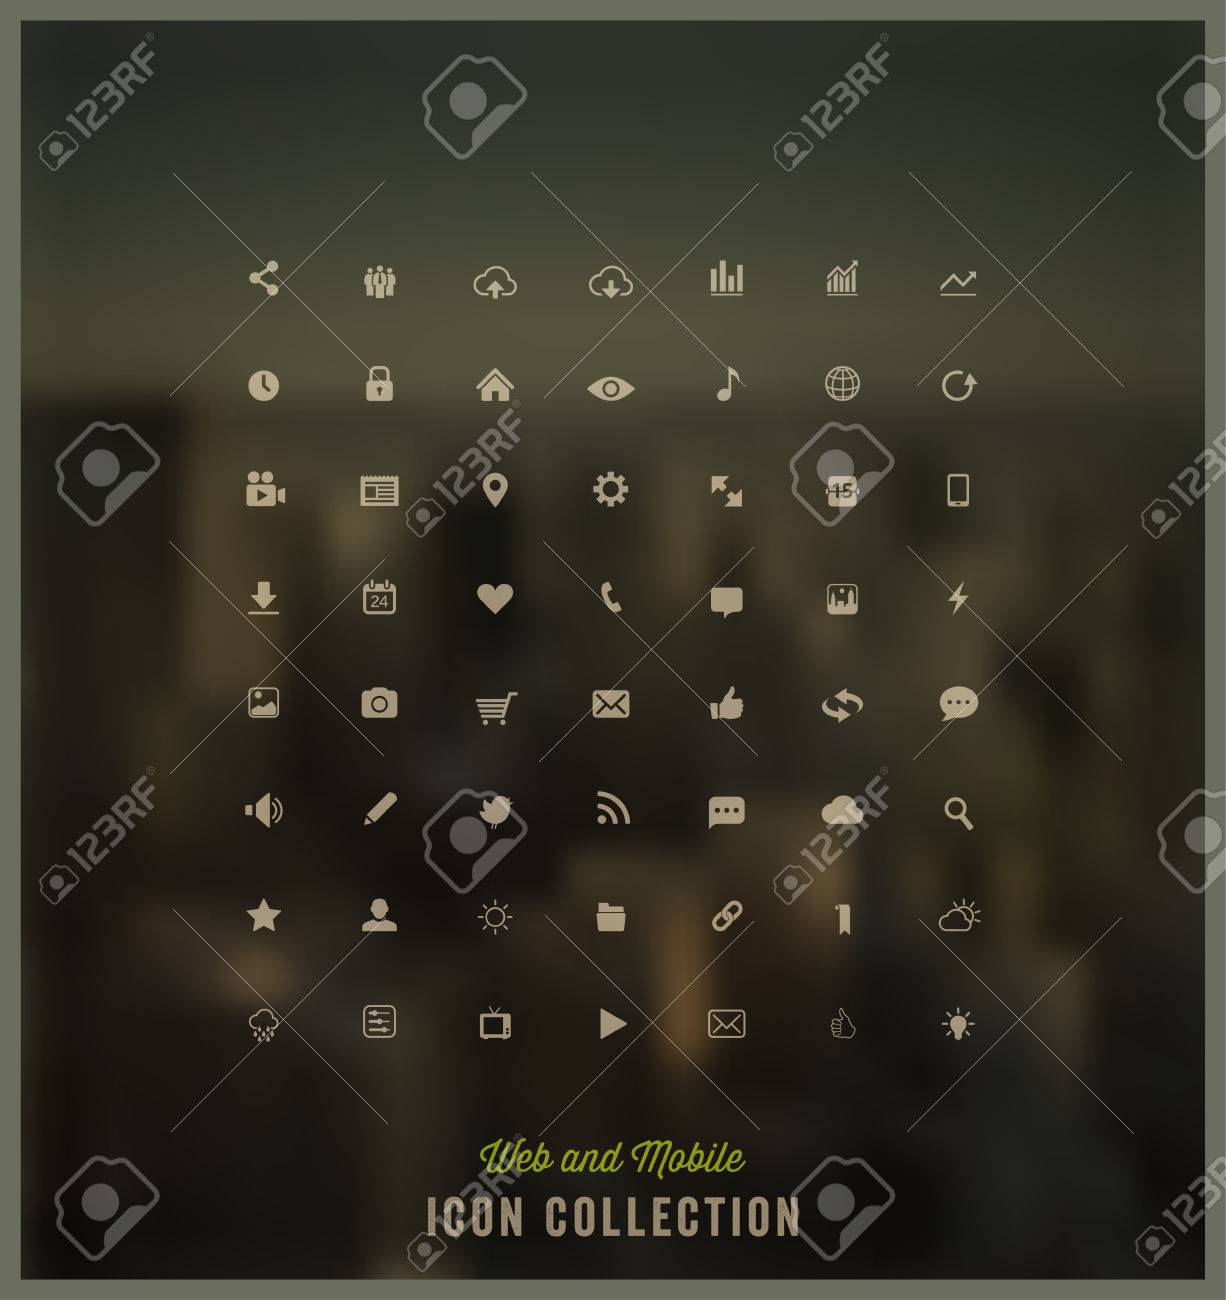 Web and Mobile icon collection Stock Vector - 23235967